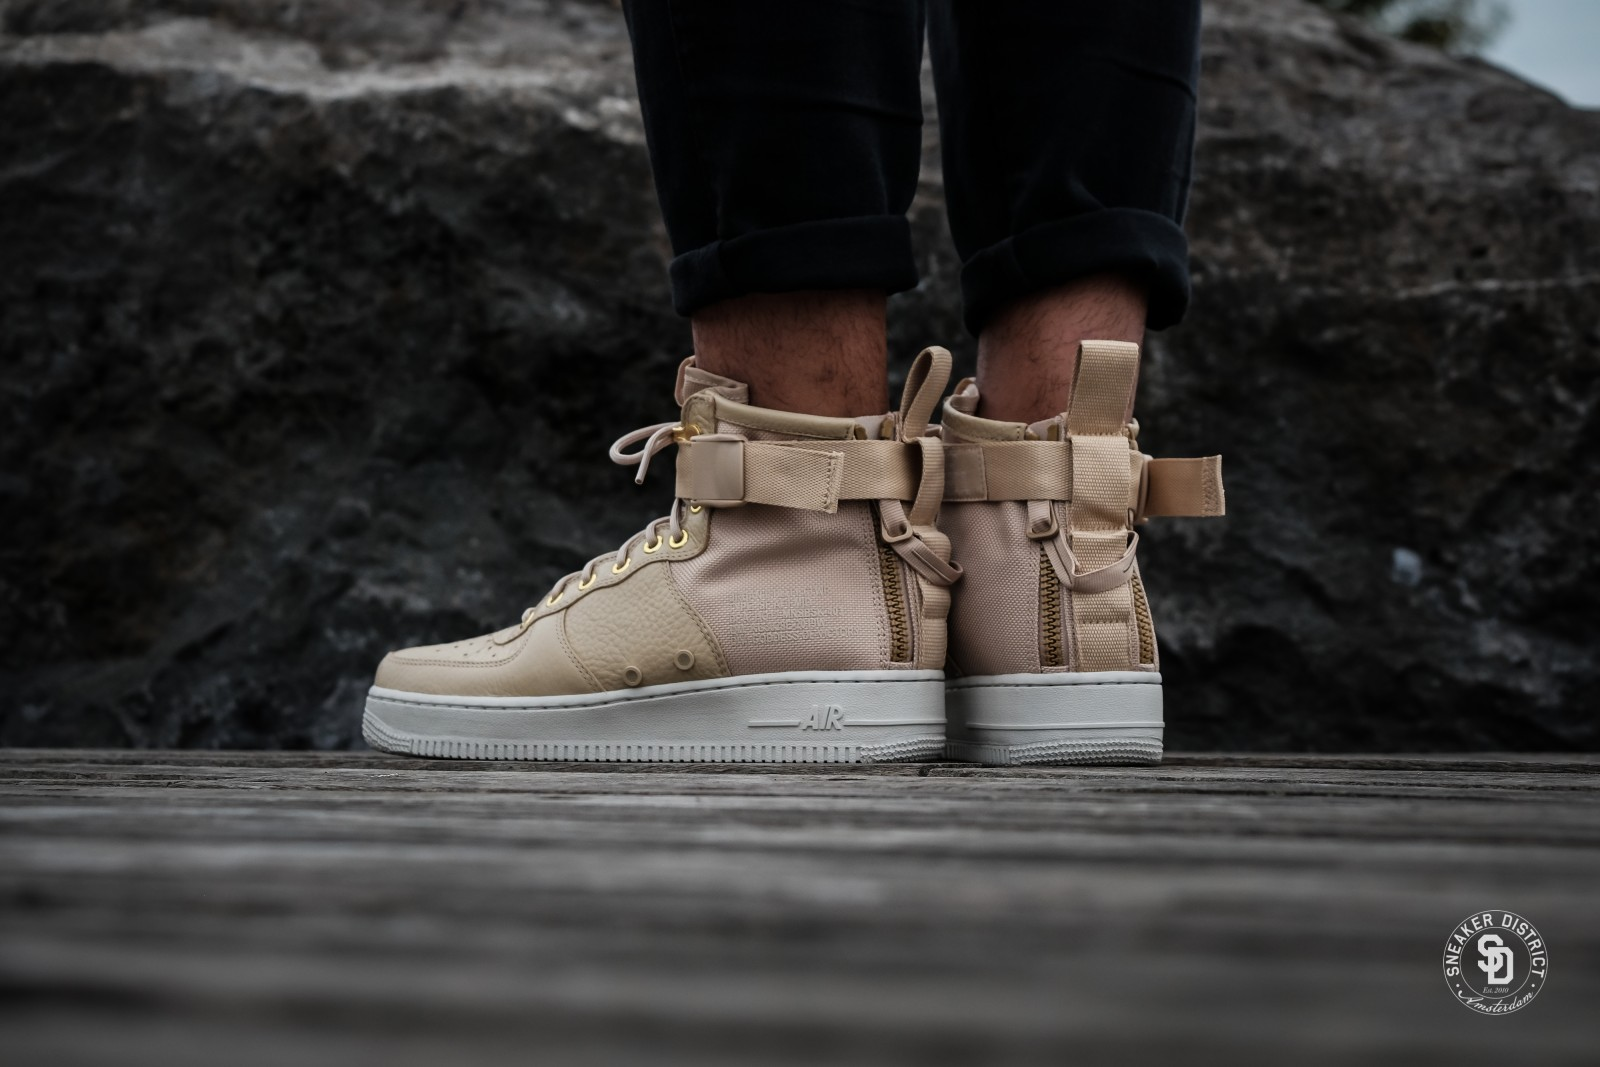 Nike SF Air Force 1 Mid MushroomLight Bone 917753 200